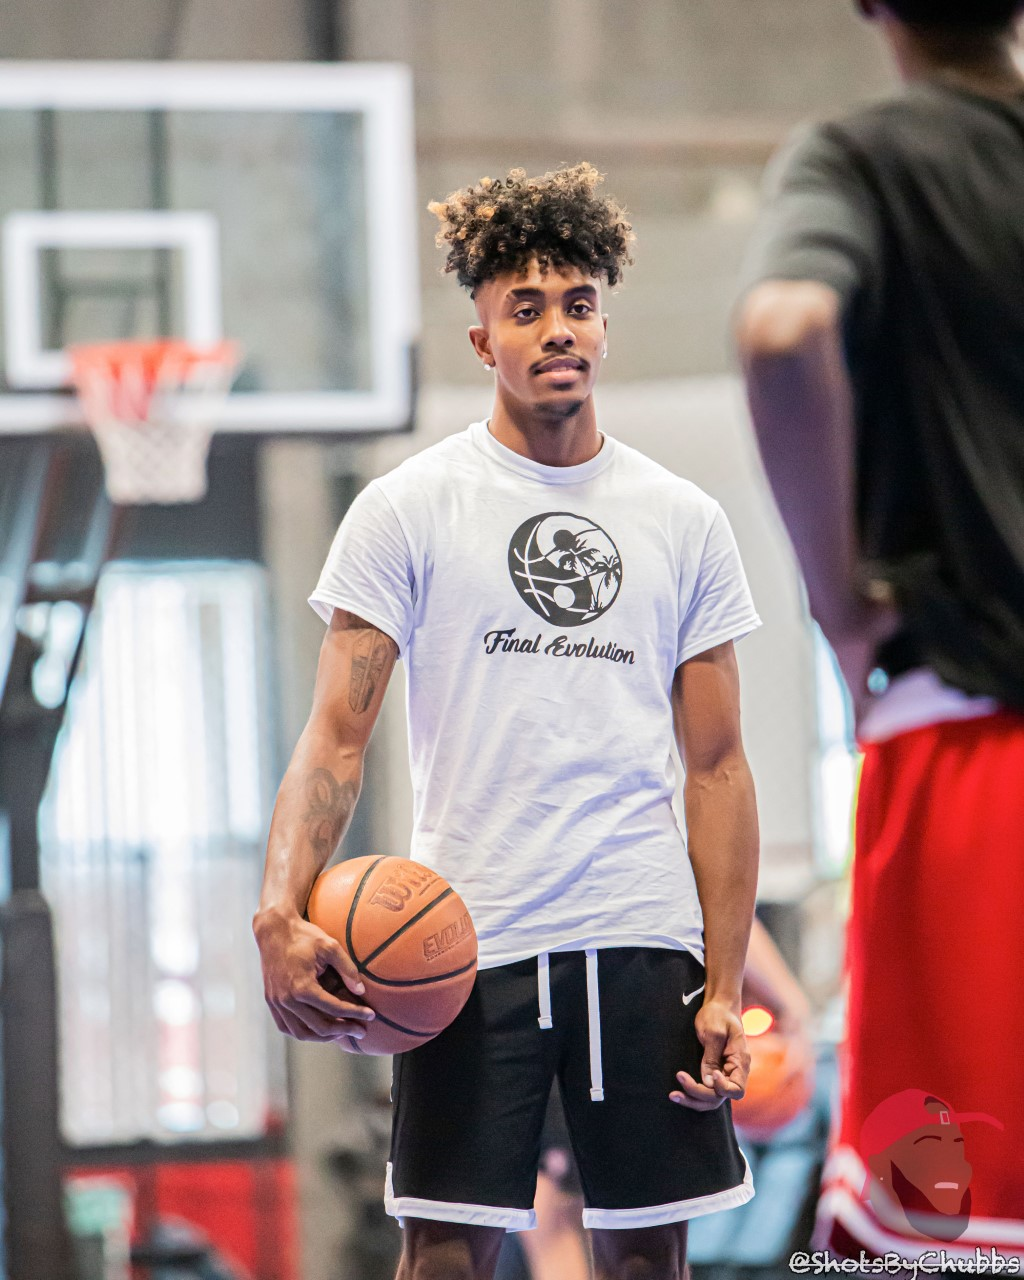 Pro Dunker, Elijah Bonds, Gives Hoopers a Leg Up with Jump Training Program